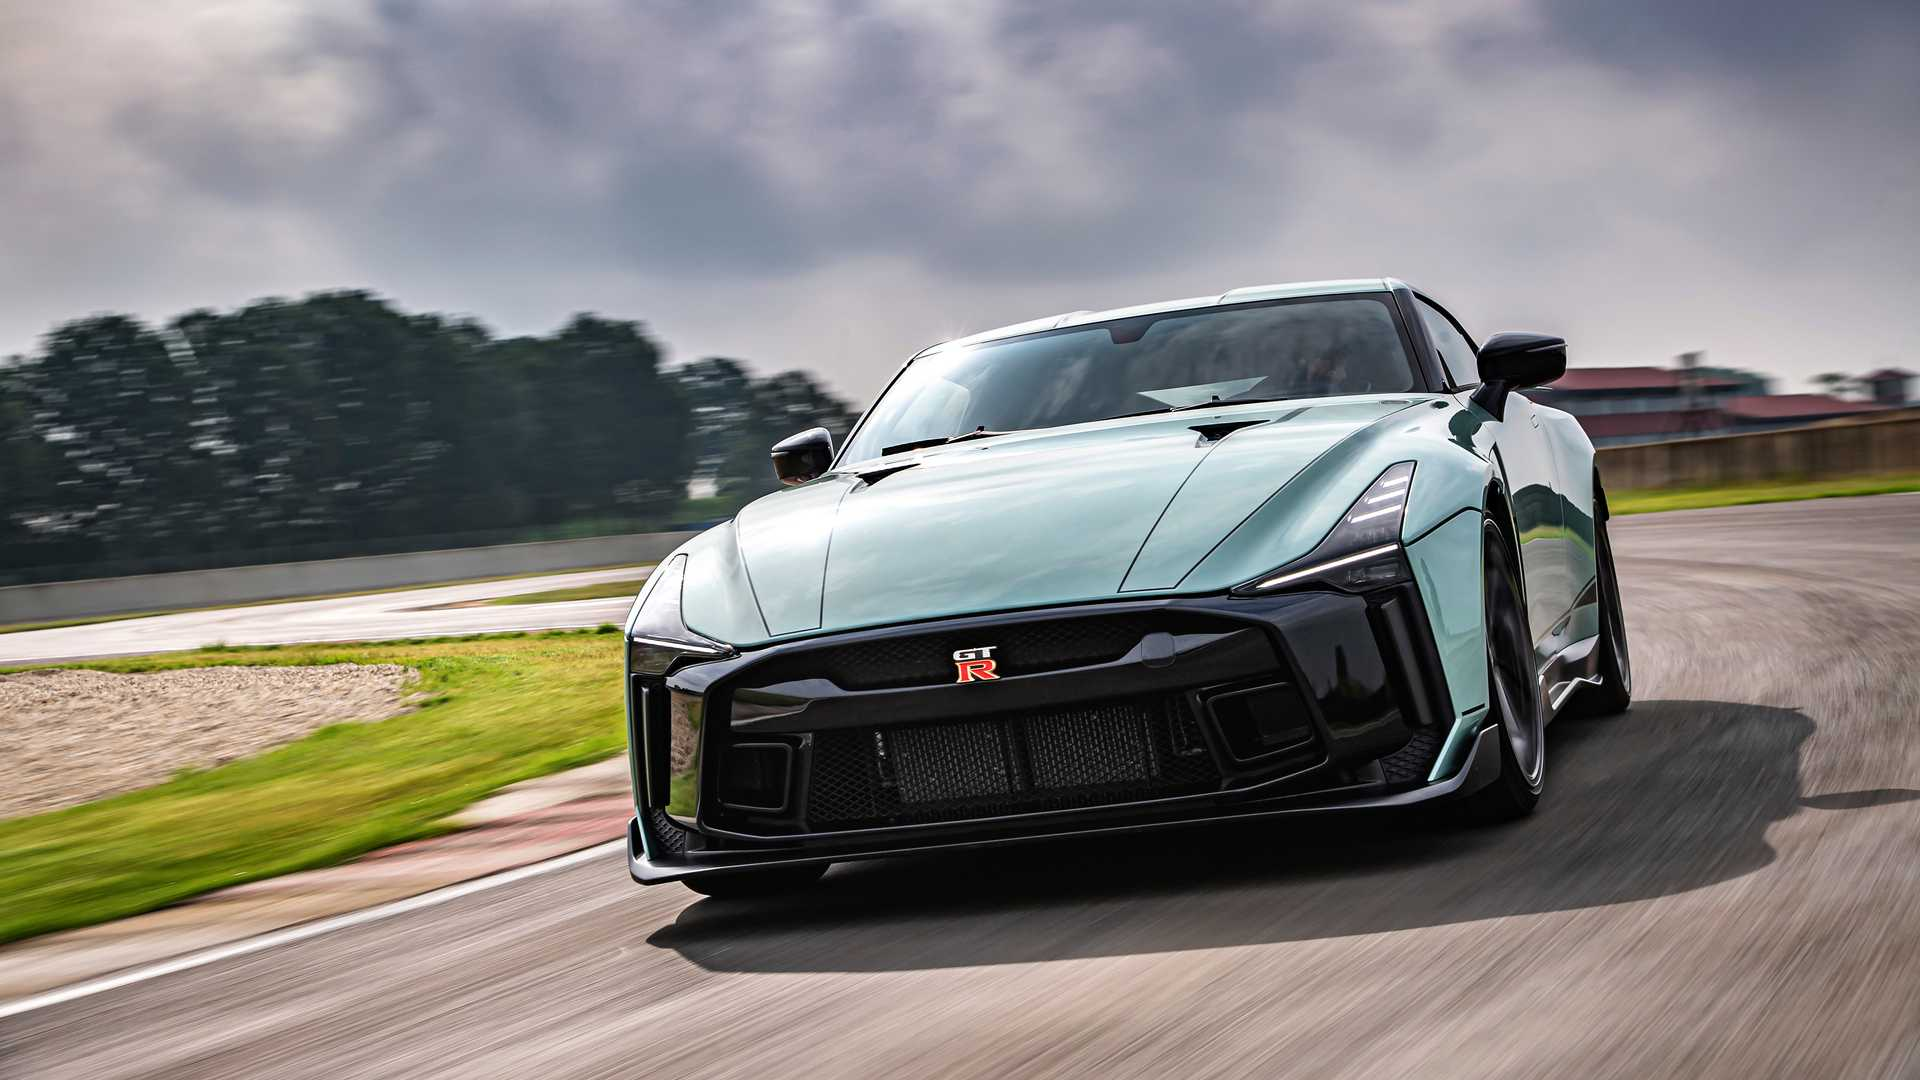 2020 nissan gt r50 by italdesign first production car 1